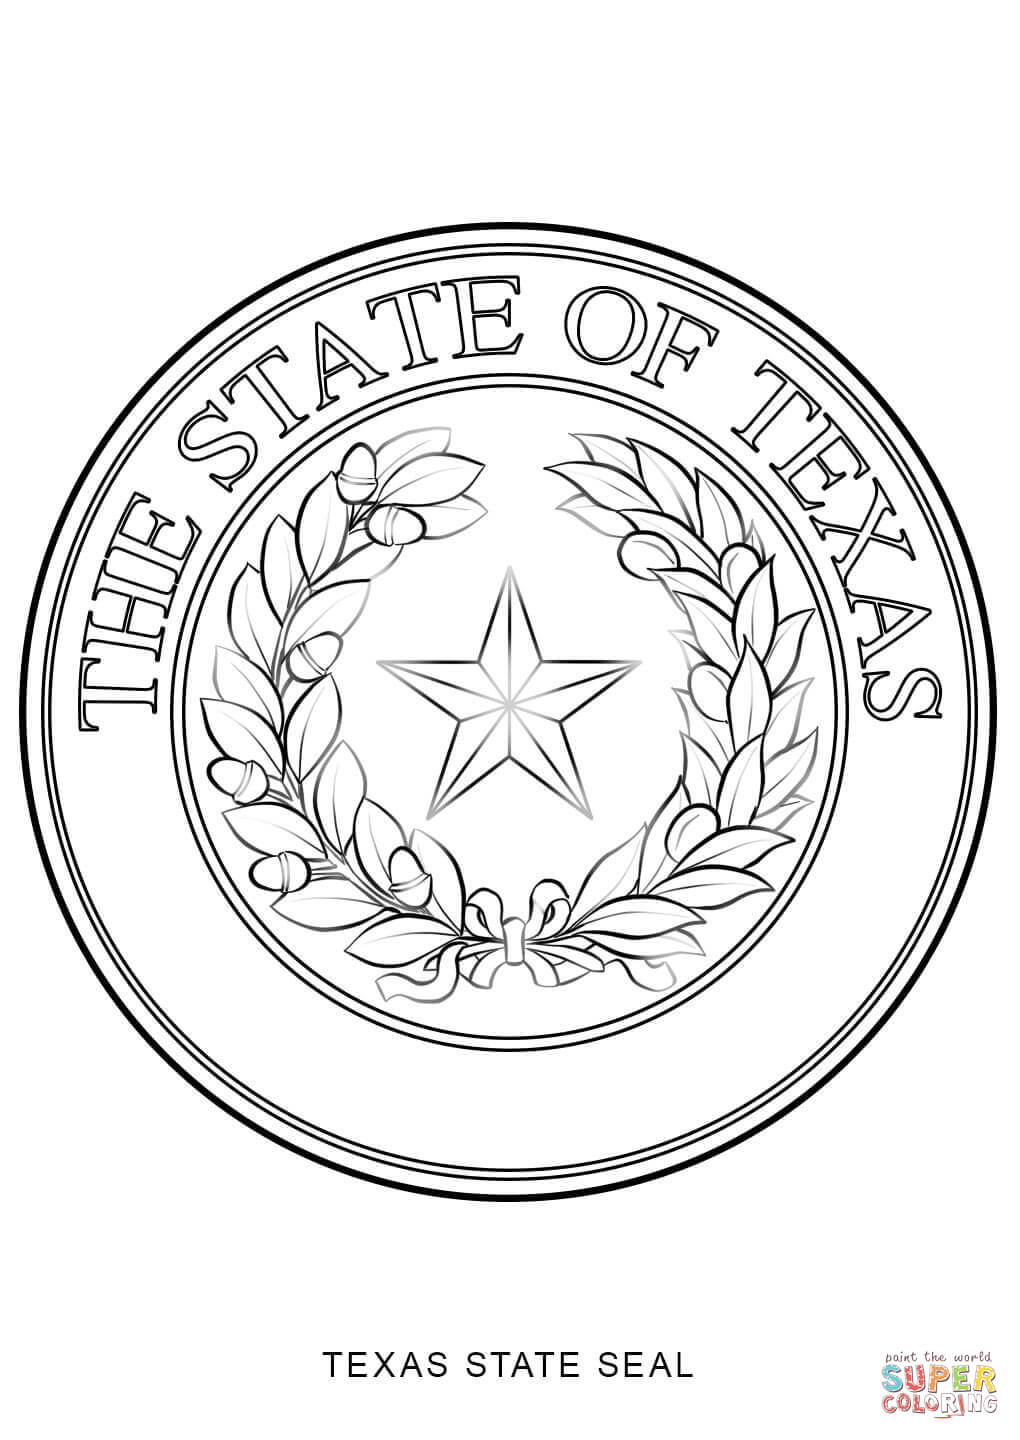 Texas State Seal Coloring Page